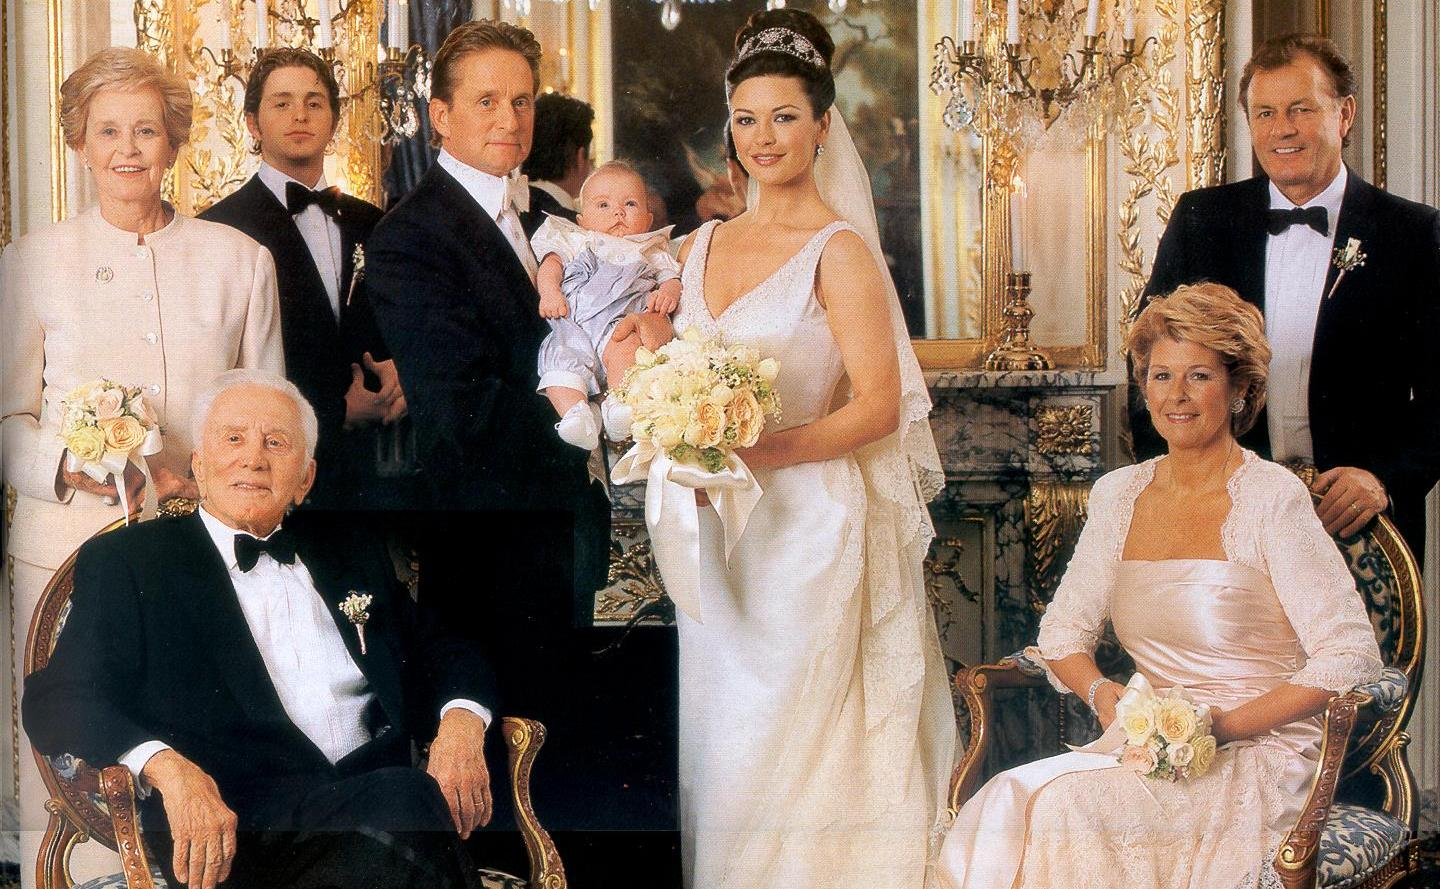 Michael Douglas and Catherine Zeta-Jones on their wedding day in 2000. (Photo: Terry Deroy Gruber Photographers)